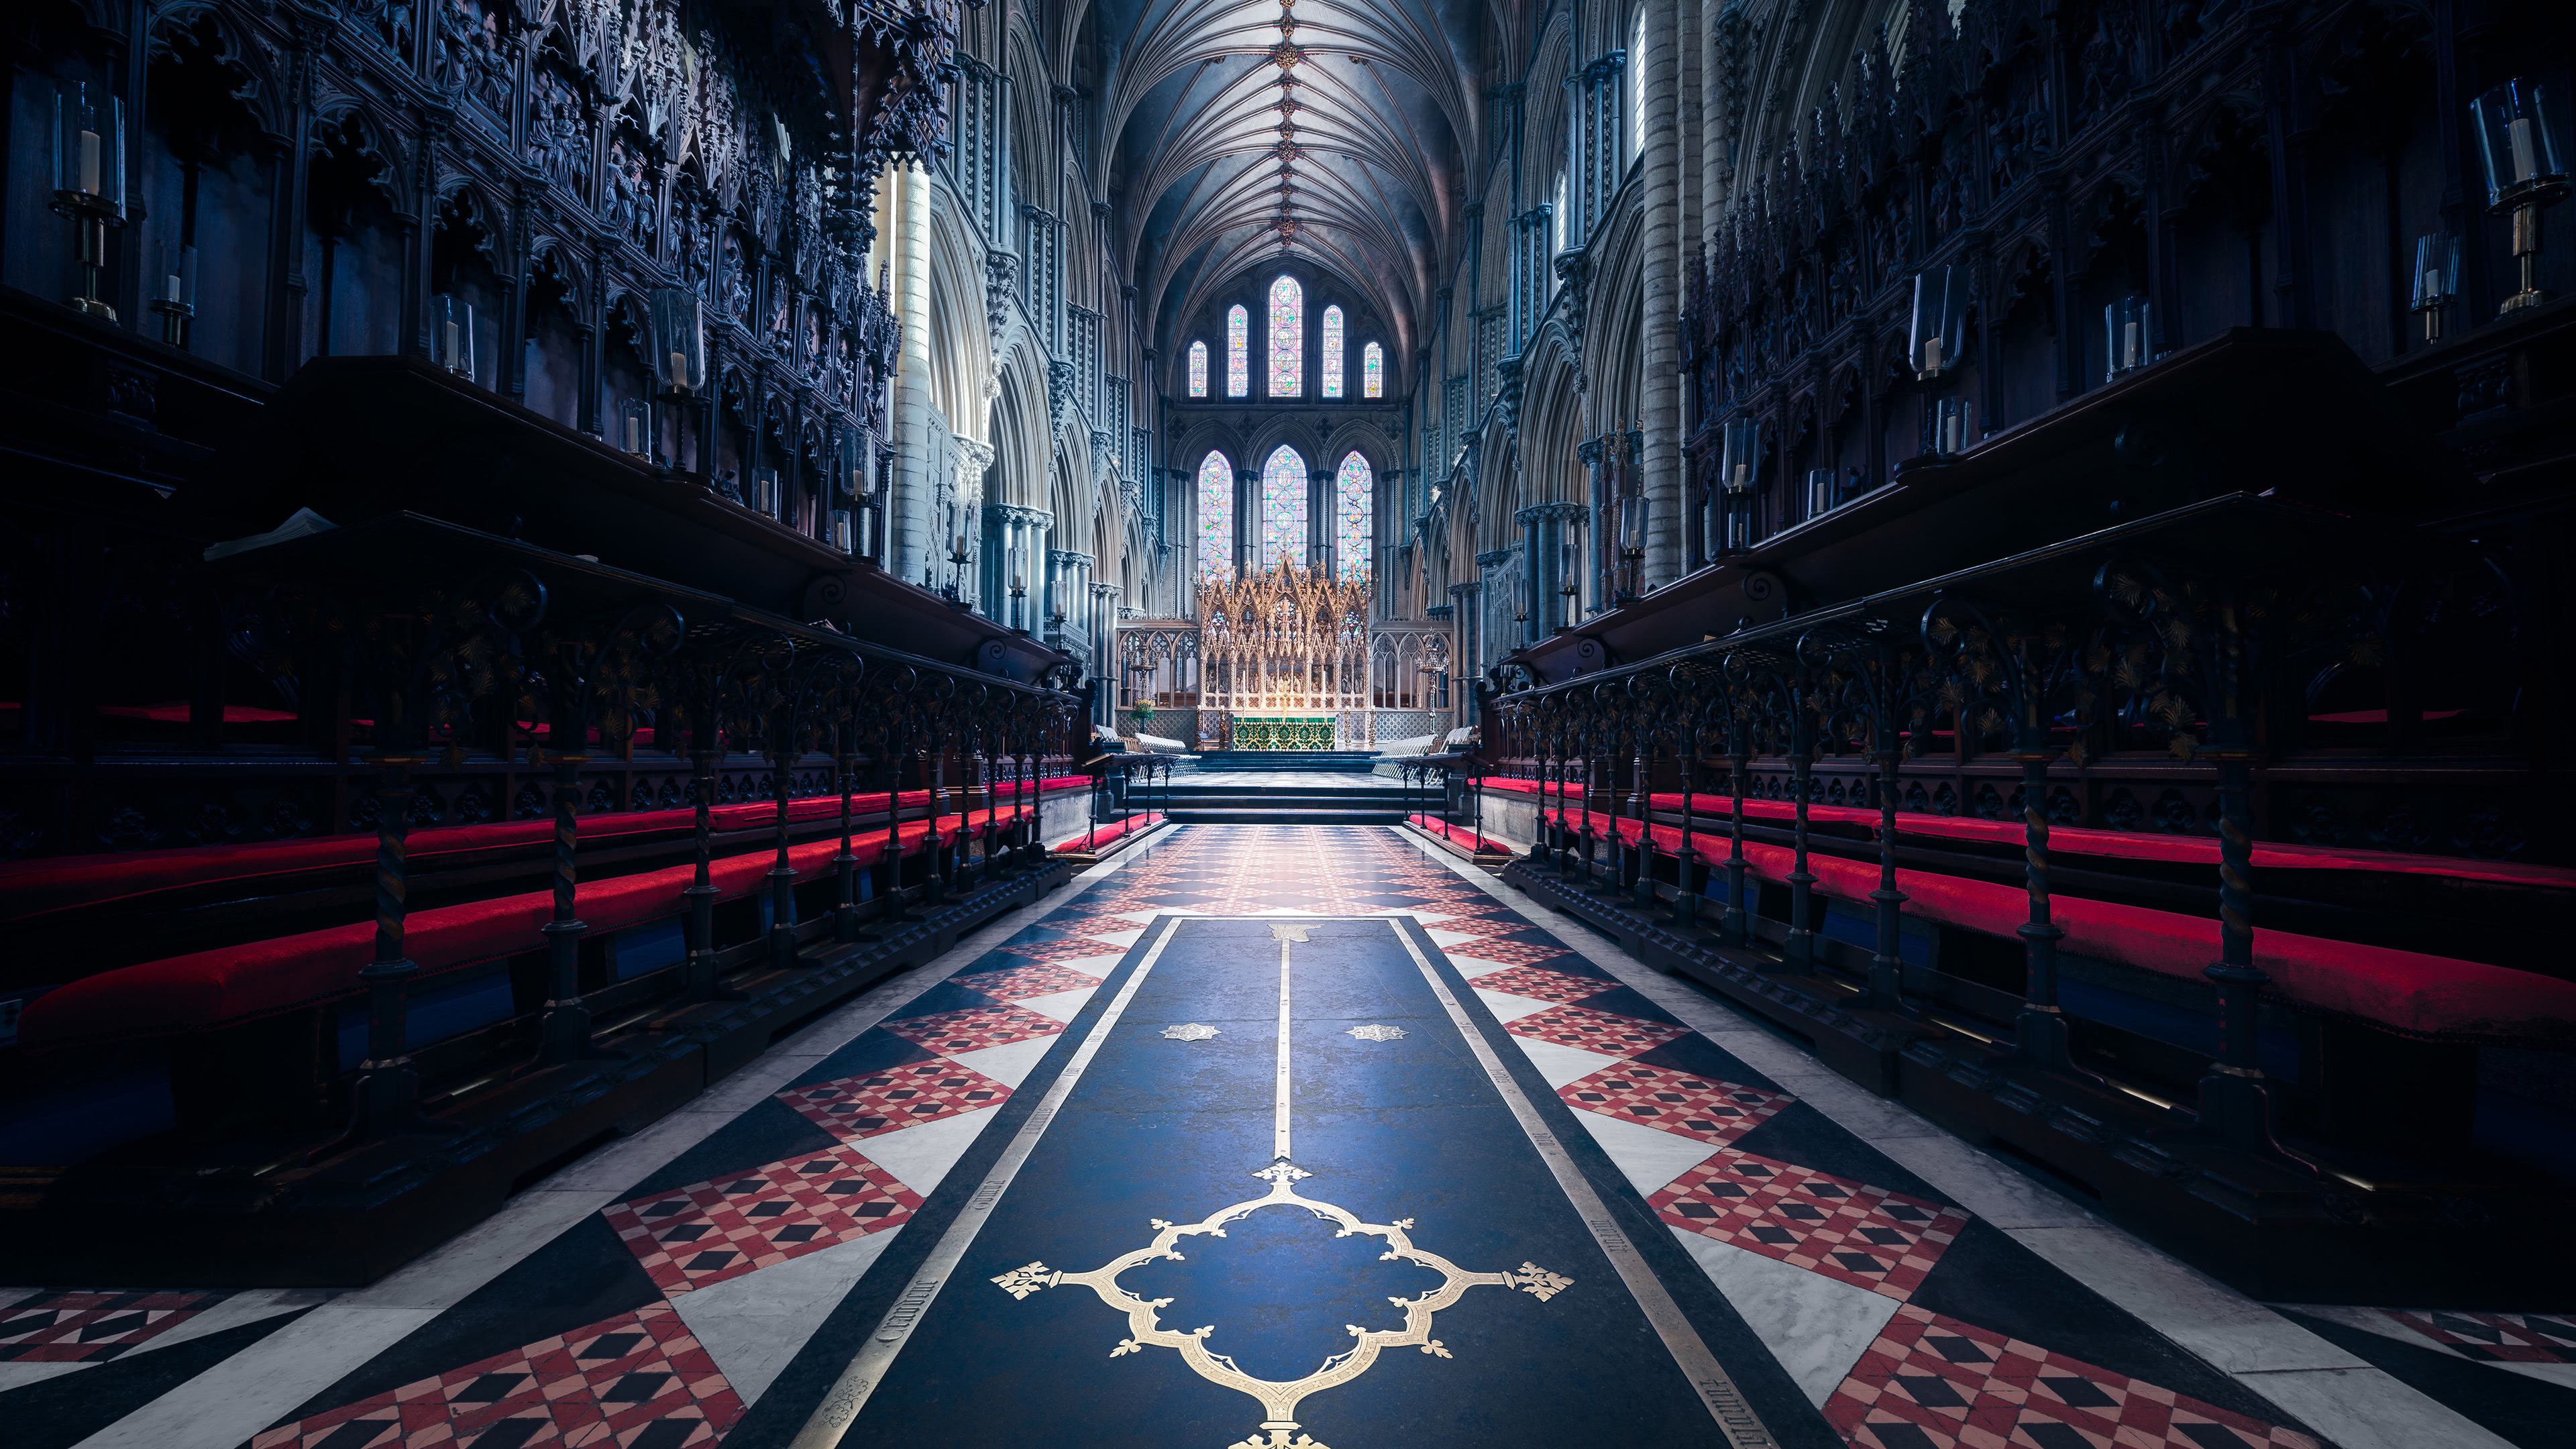 ely cathedral cambridgeshire england uhd 4k wallpaper